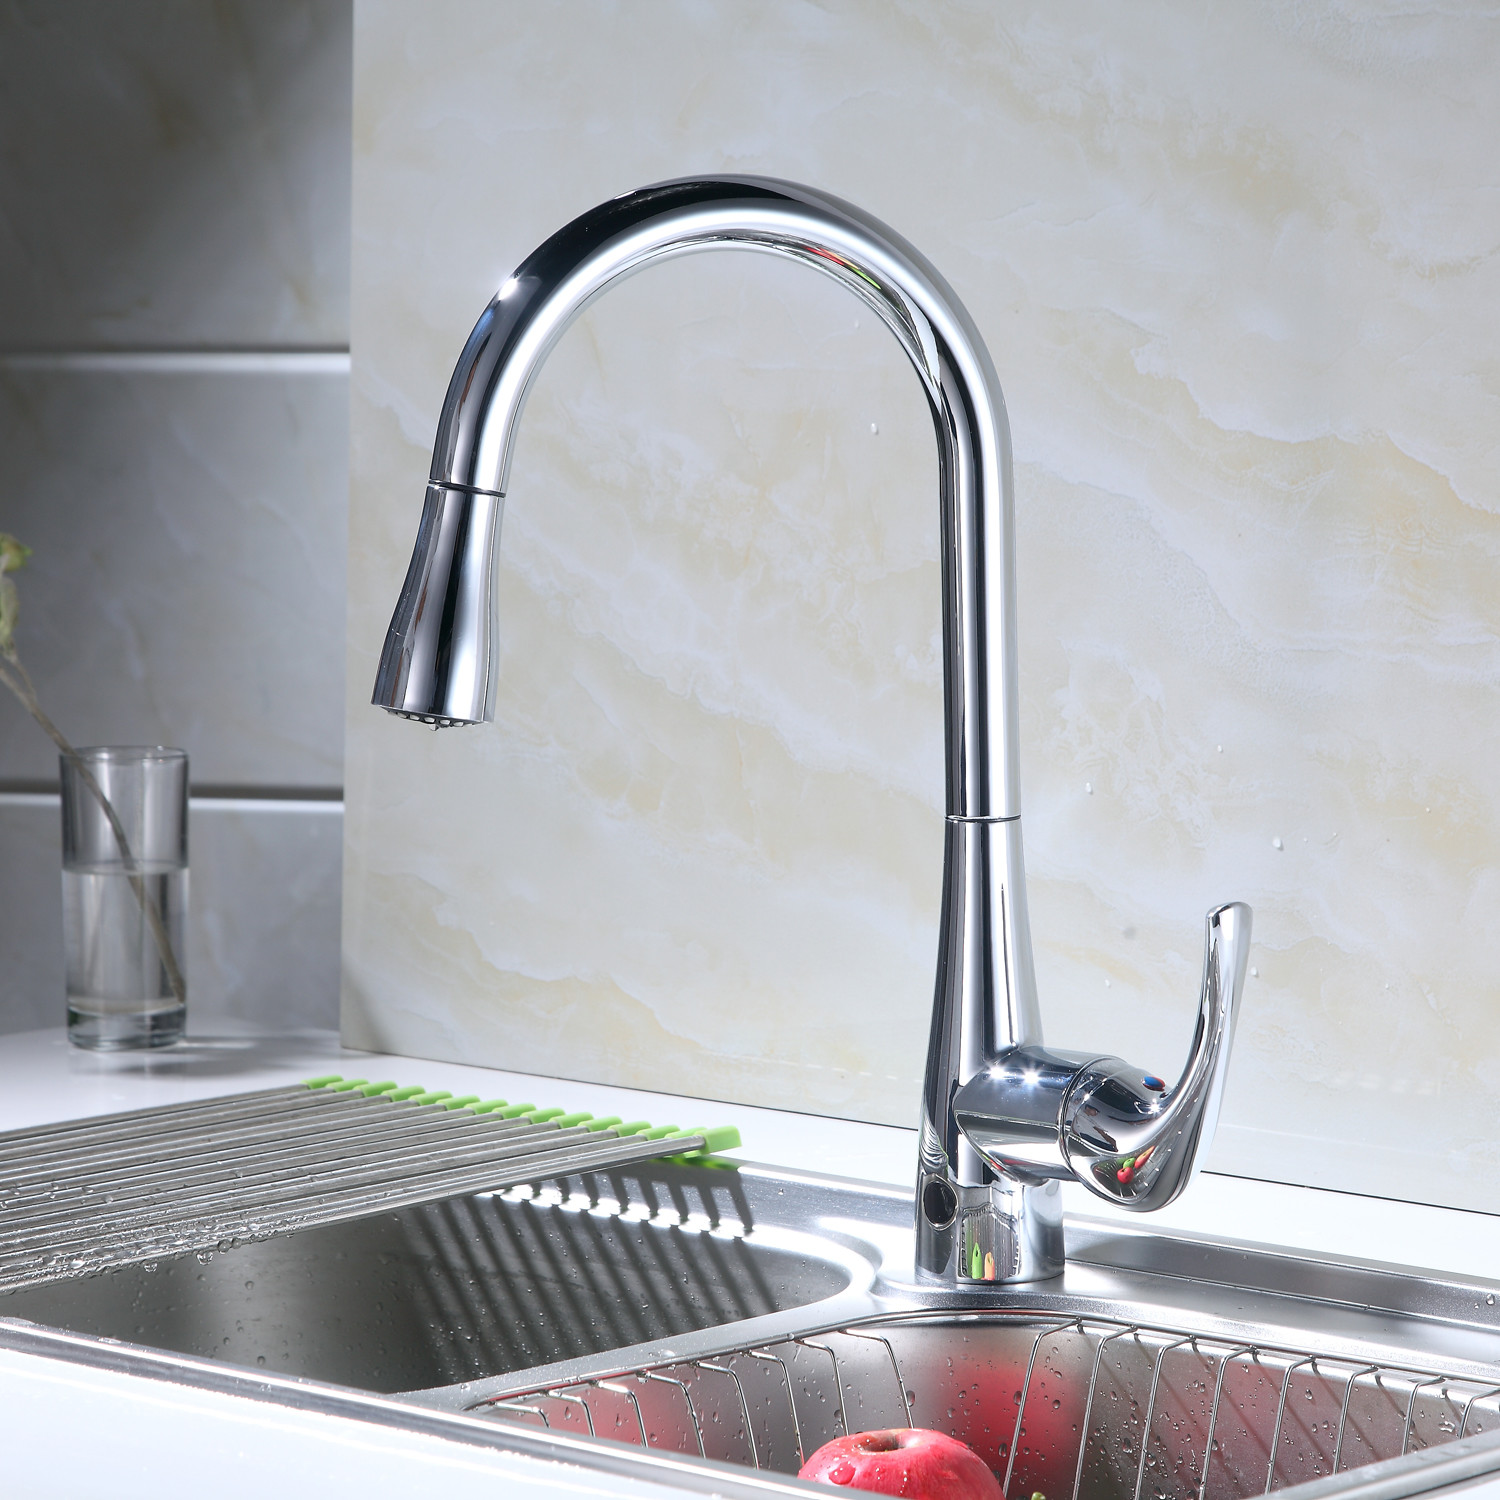 FLOW // Motion Sensor Kitchen Faucet (Oil Rubbed Bronze) - Bio Bidet ...